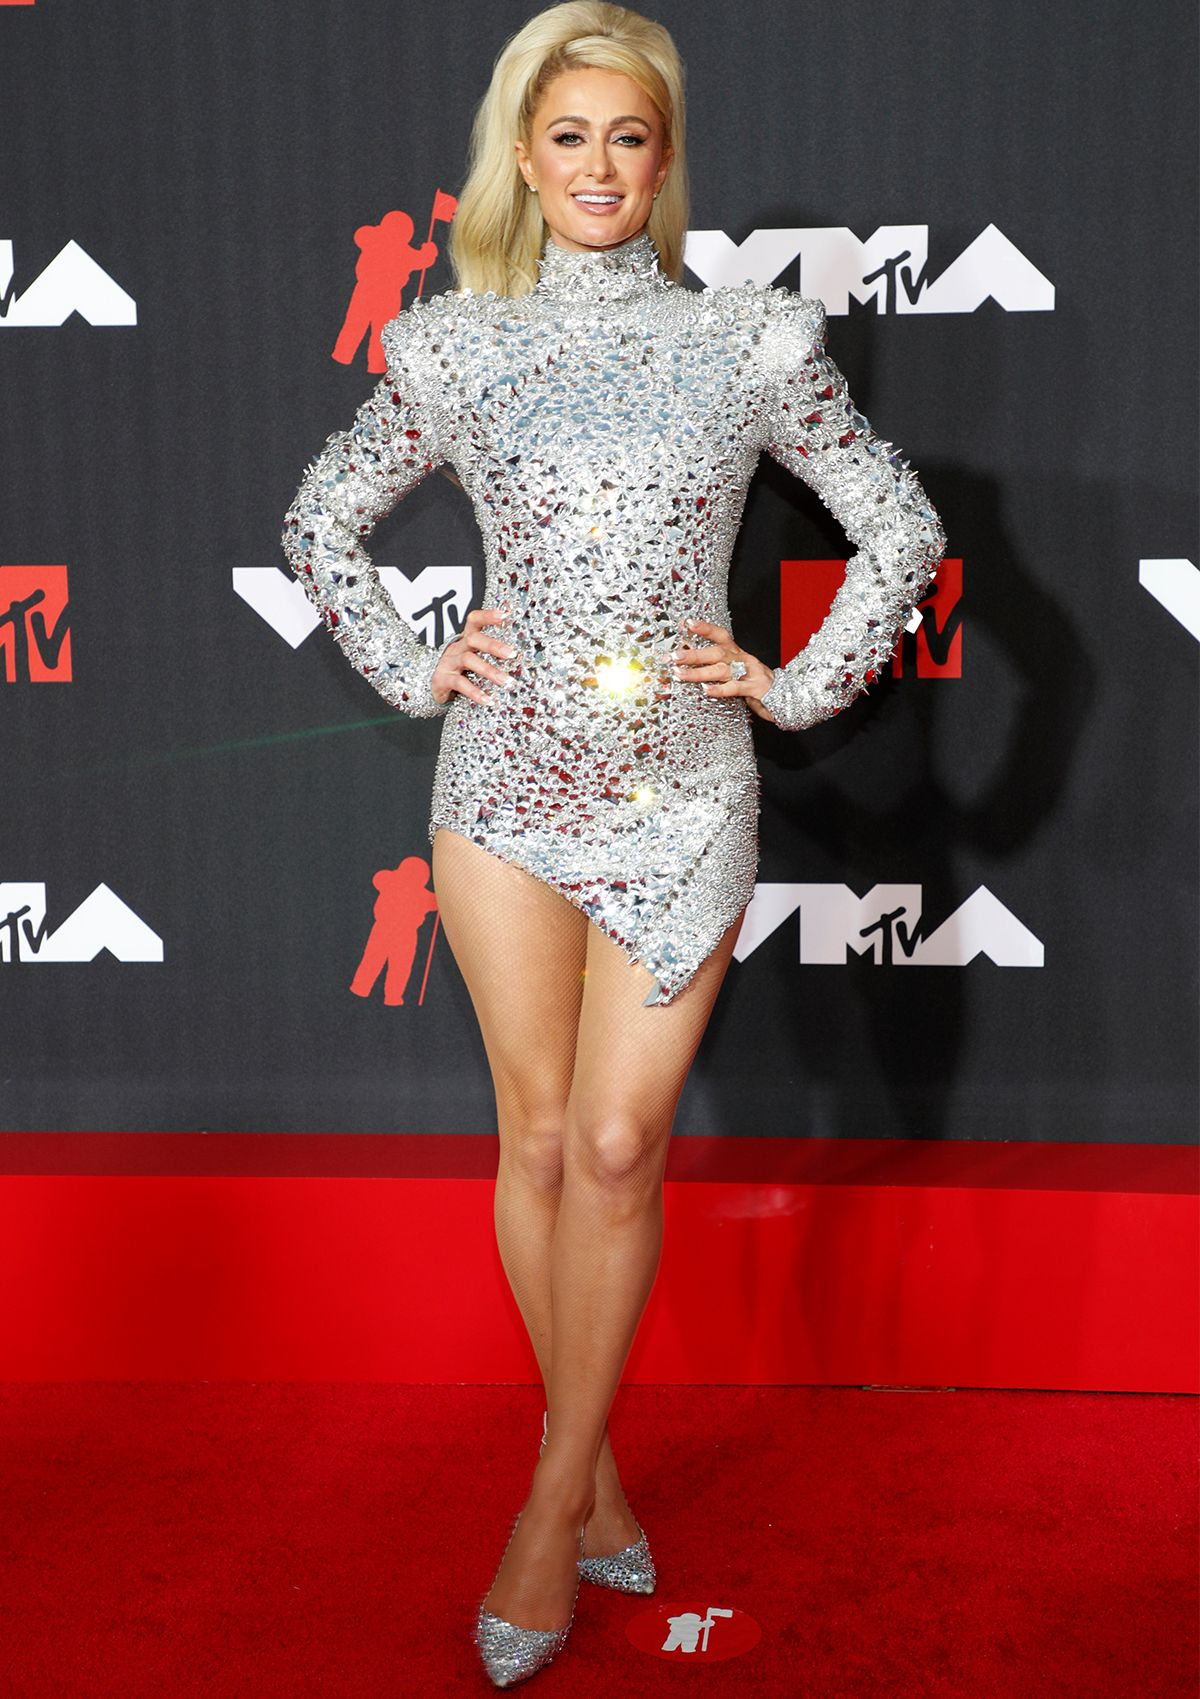 The MTV VMAs Red Carpet Looks That Shocked and Amazed Us - mtv vma red carpet 2021 295172 1631489139440